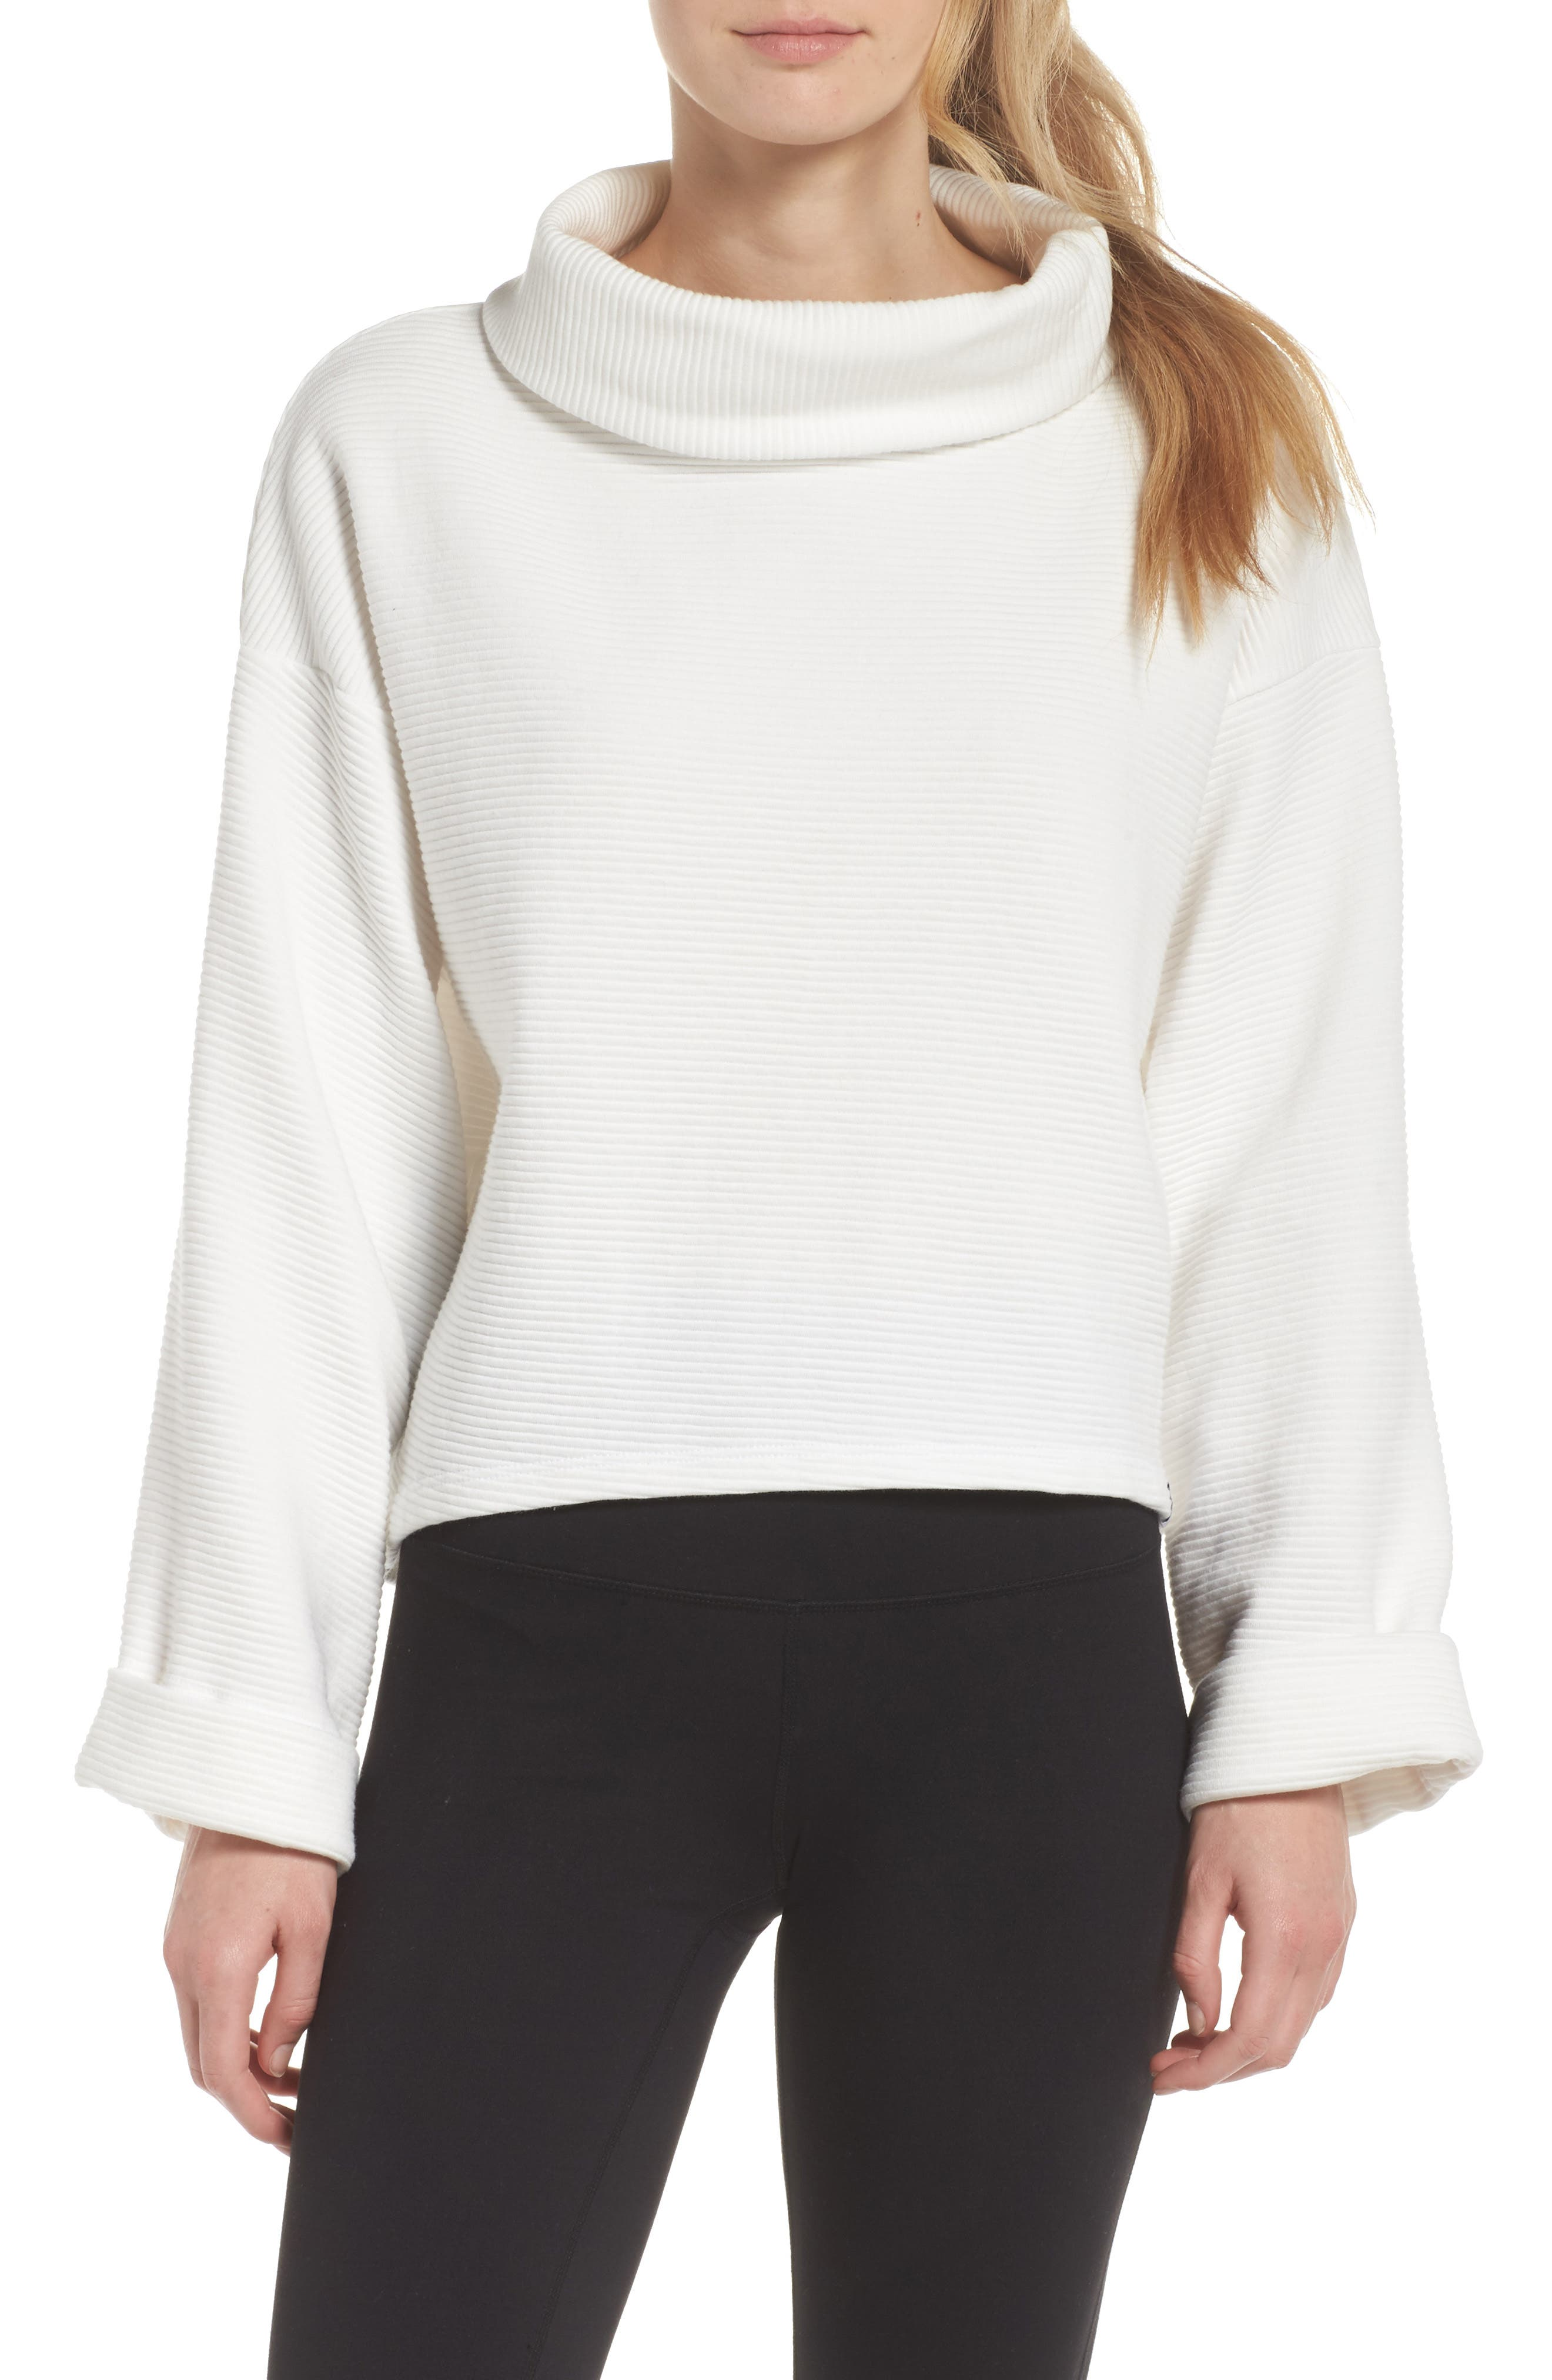 Varley Whittier Sweatshirt